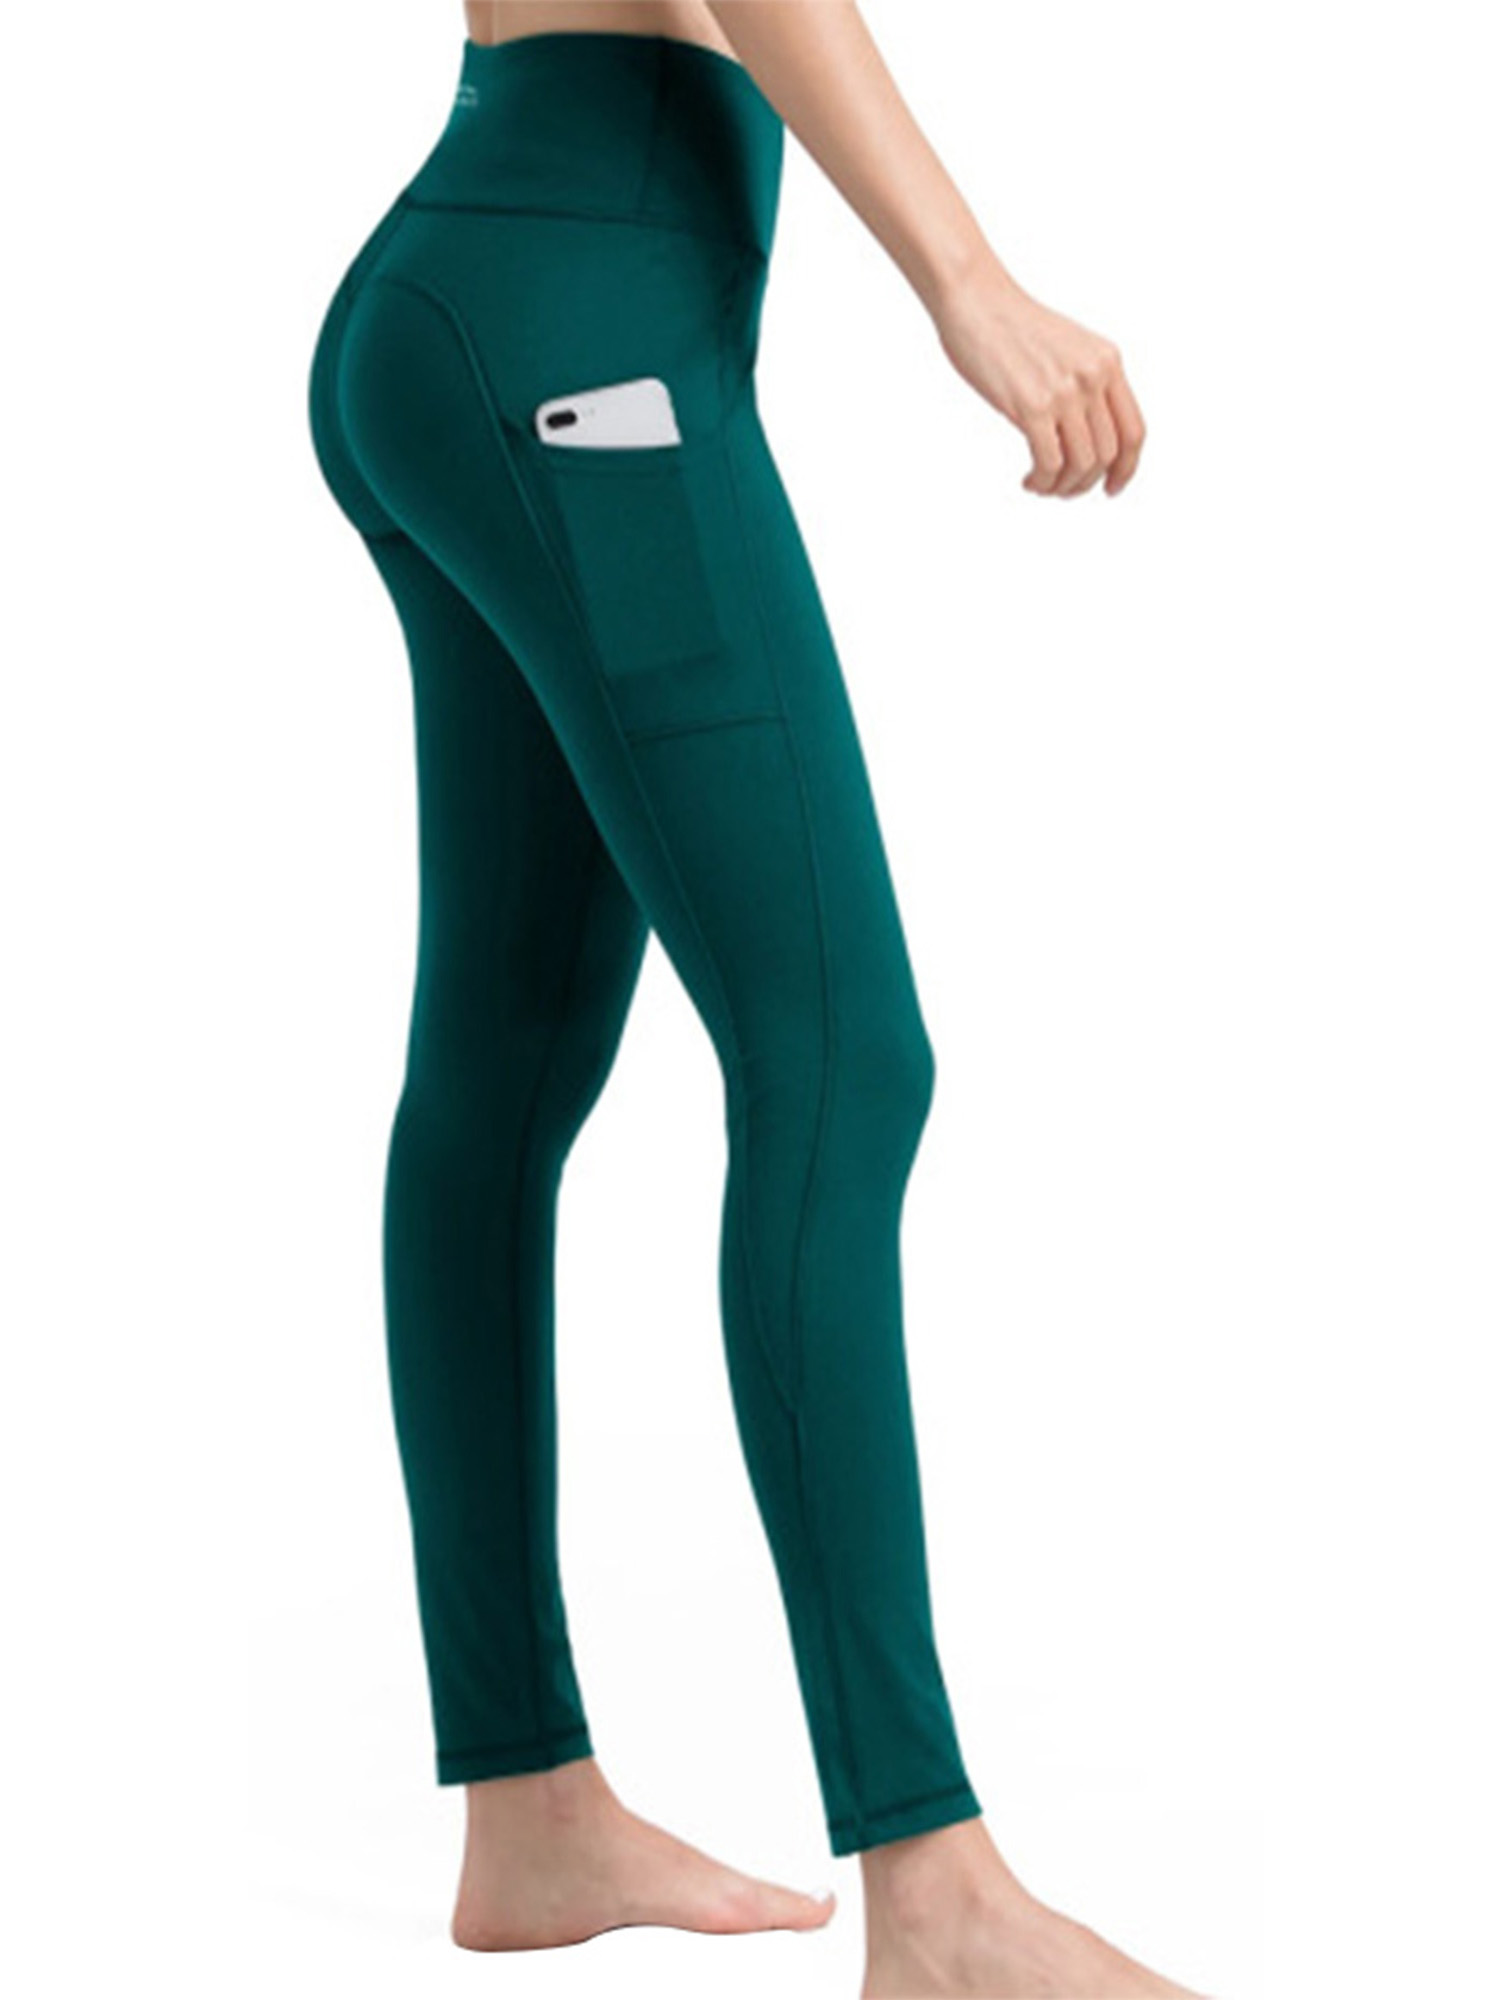 Details about  /Womens Ladies High Waisted Yoga Pants Gym Leggings Fitness Sports Running Tight